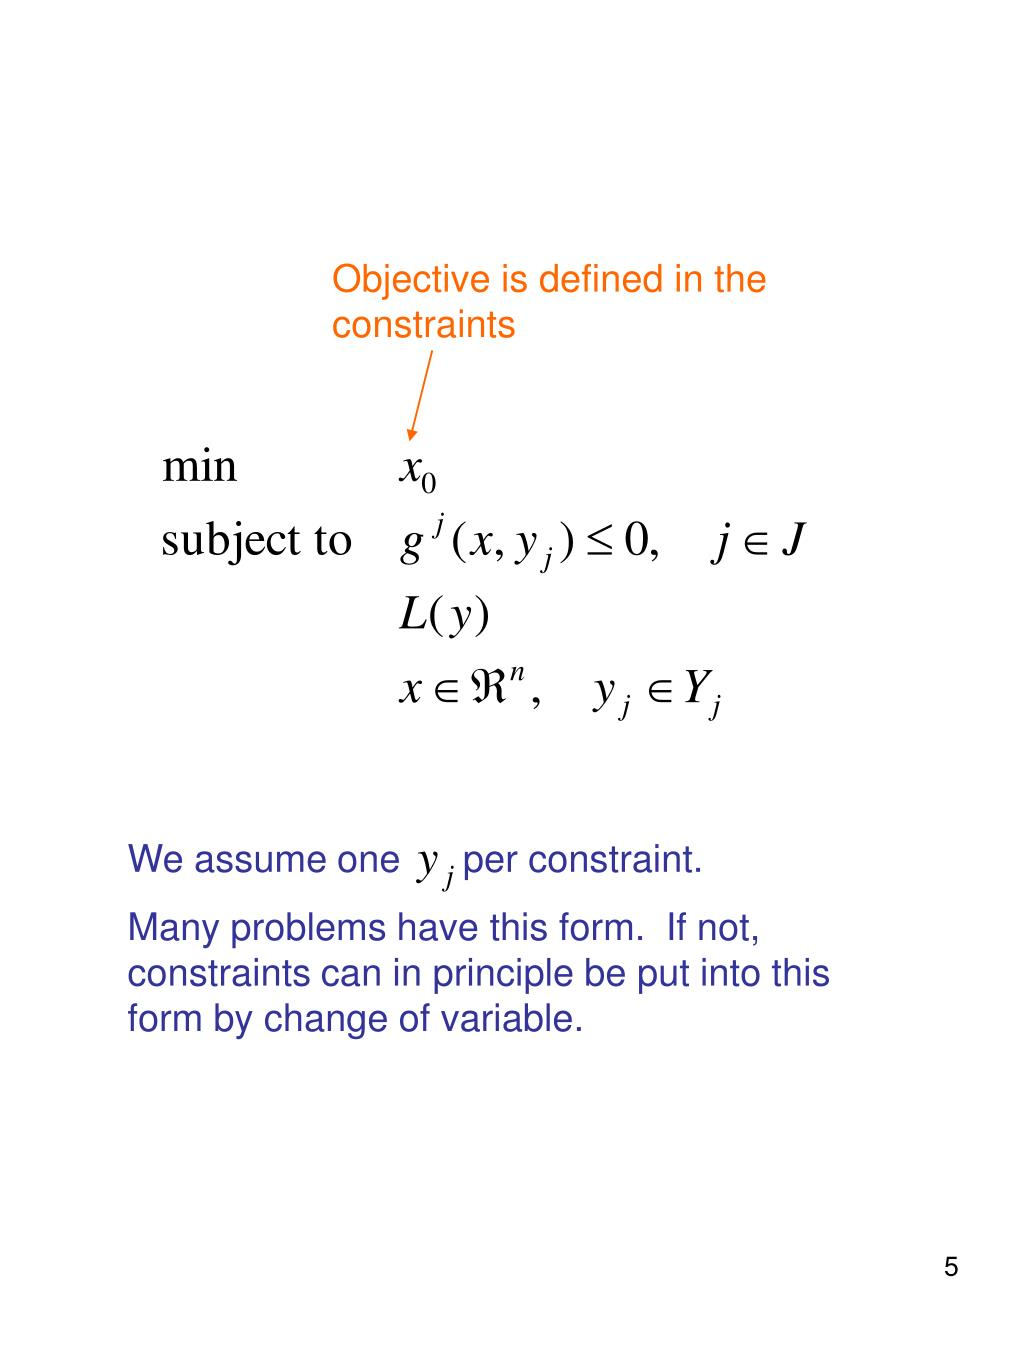 Objective is defined in the constraints